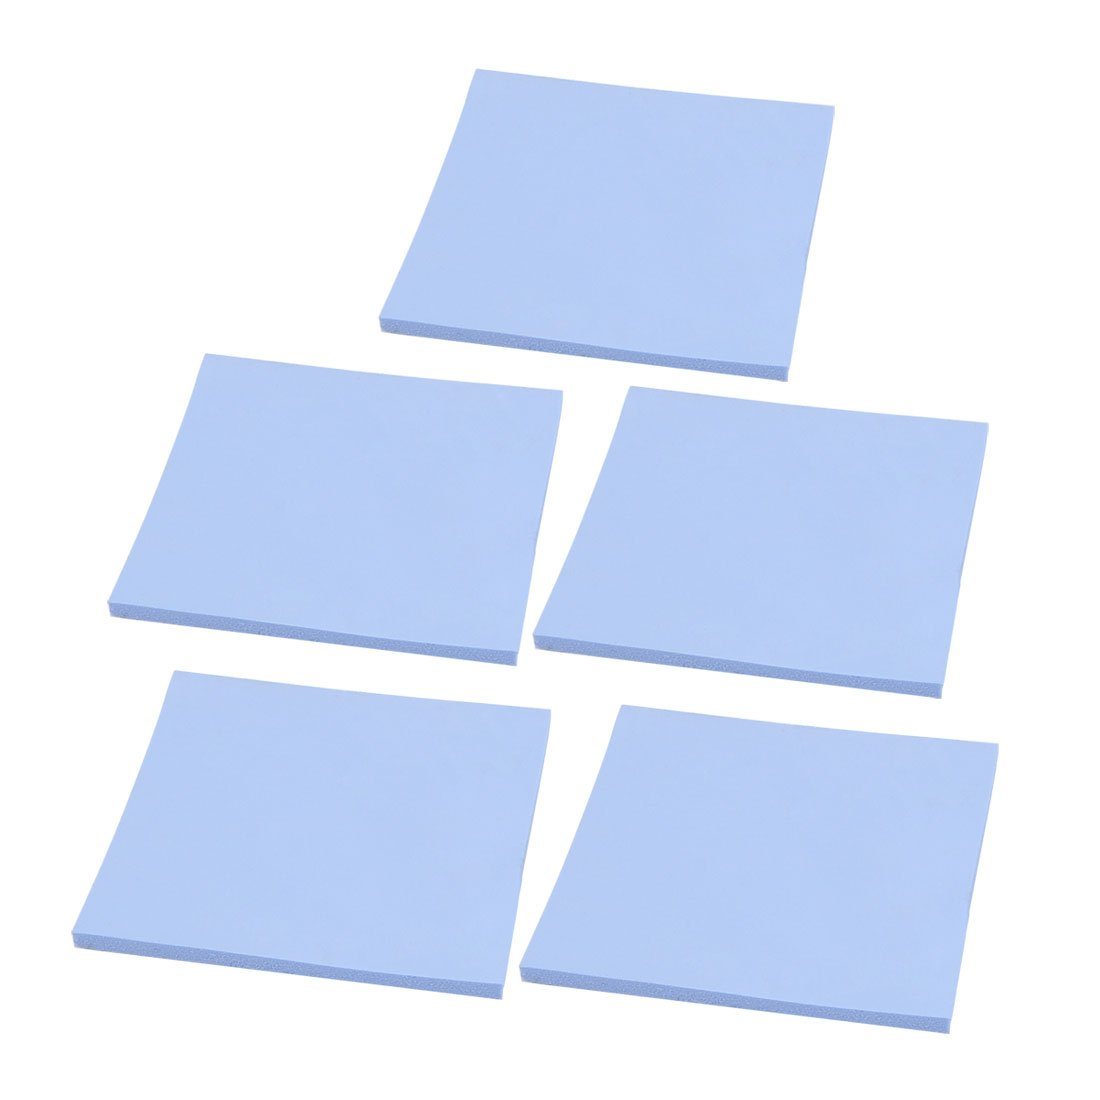 uxcell 5pcs 1mm x 100mm x 100mm Square Silicone Heatsink Sticky Thermal Pad Shim Blue